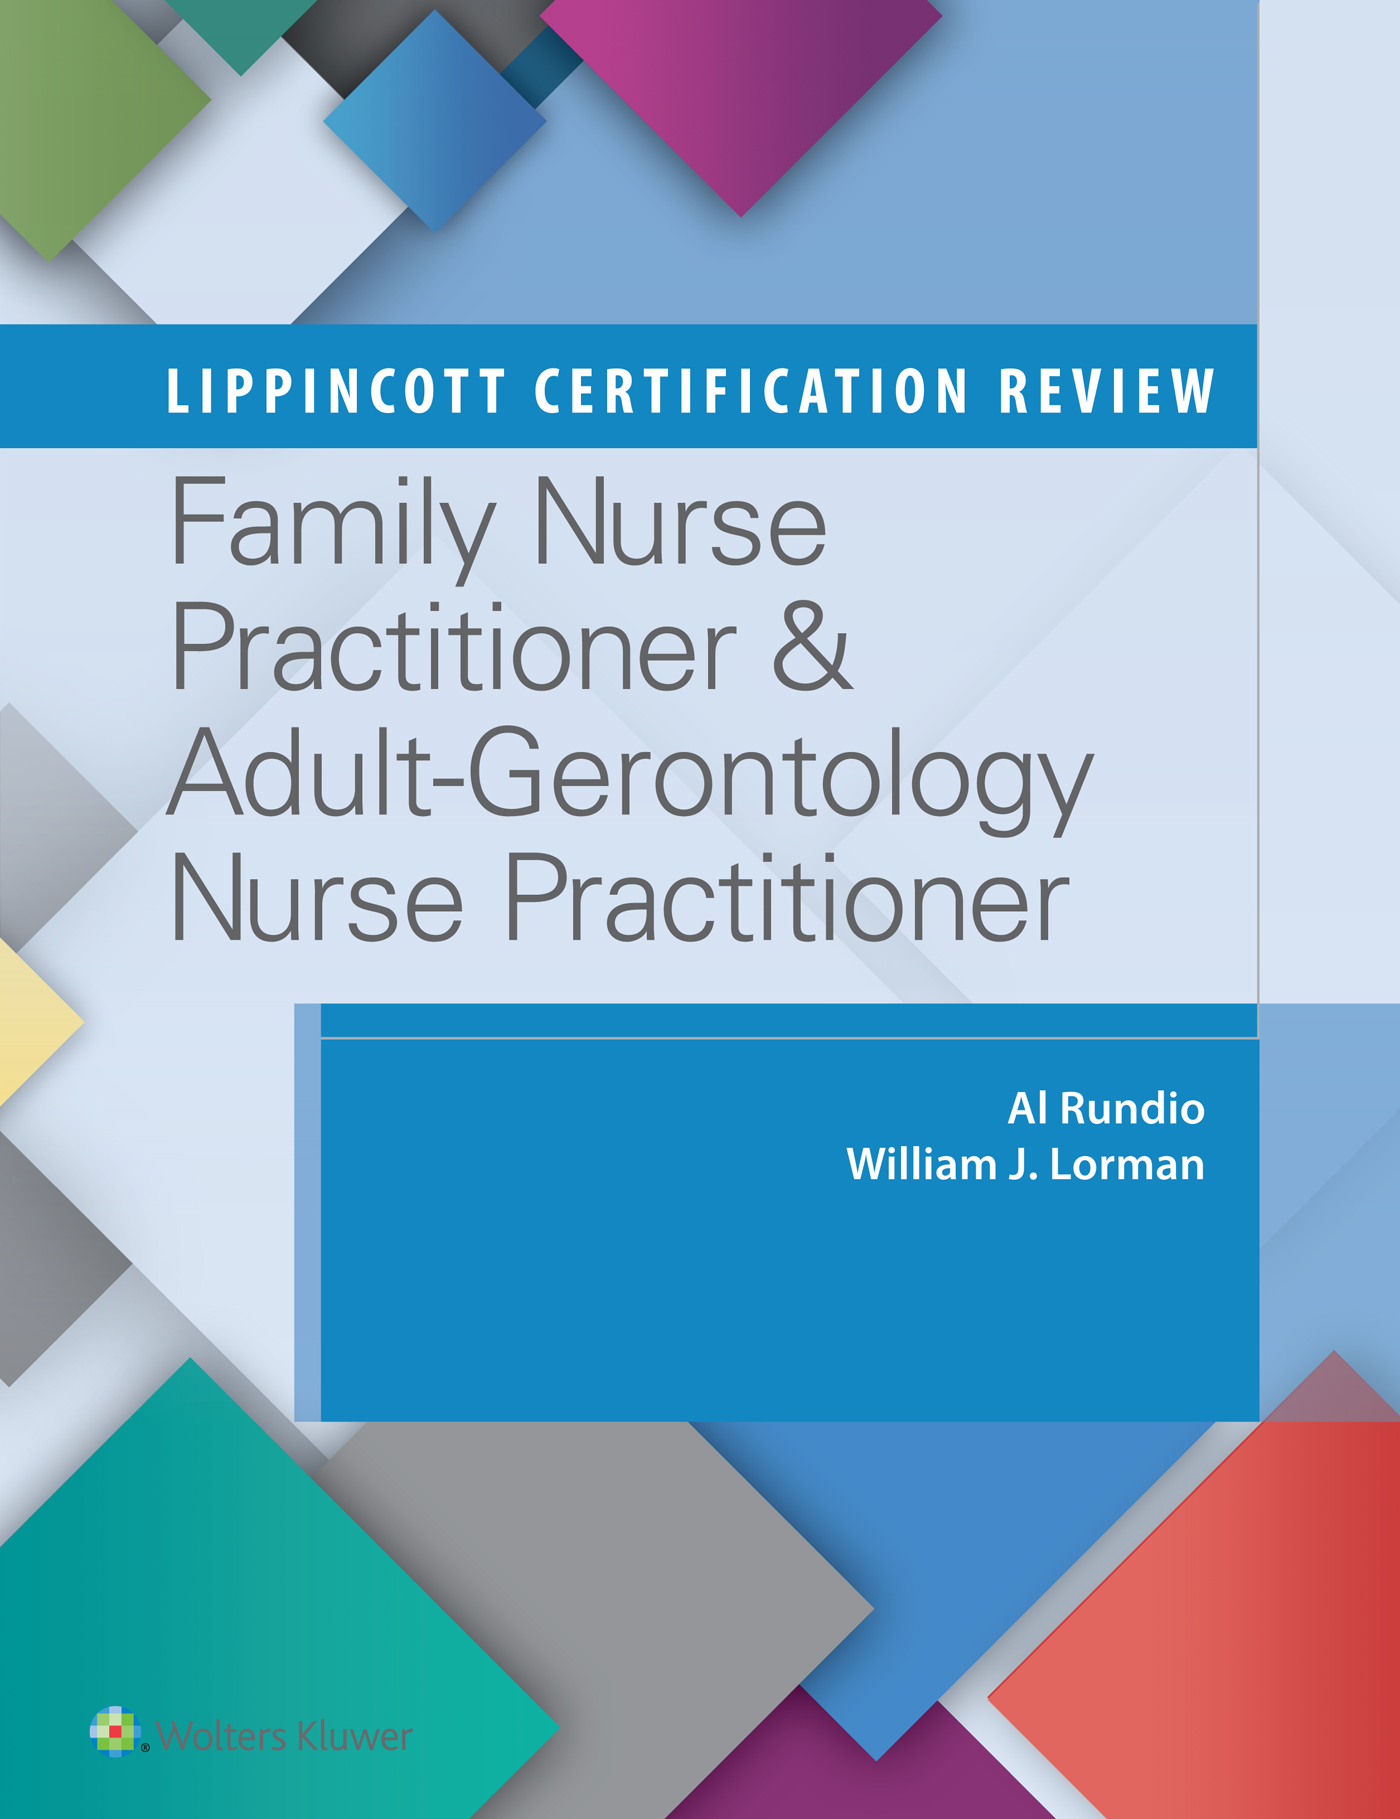 Lippincott certification review family nurse practitioner lippincott certification review family nurse practitioner 1betcityfo Images